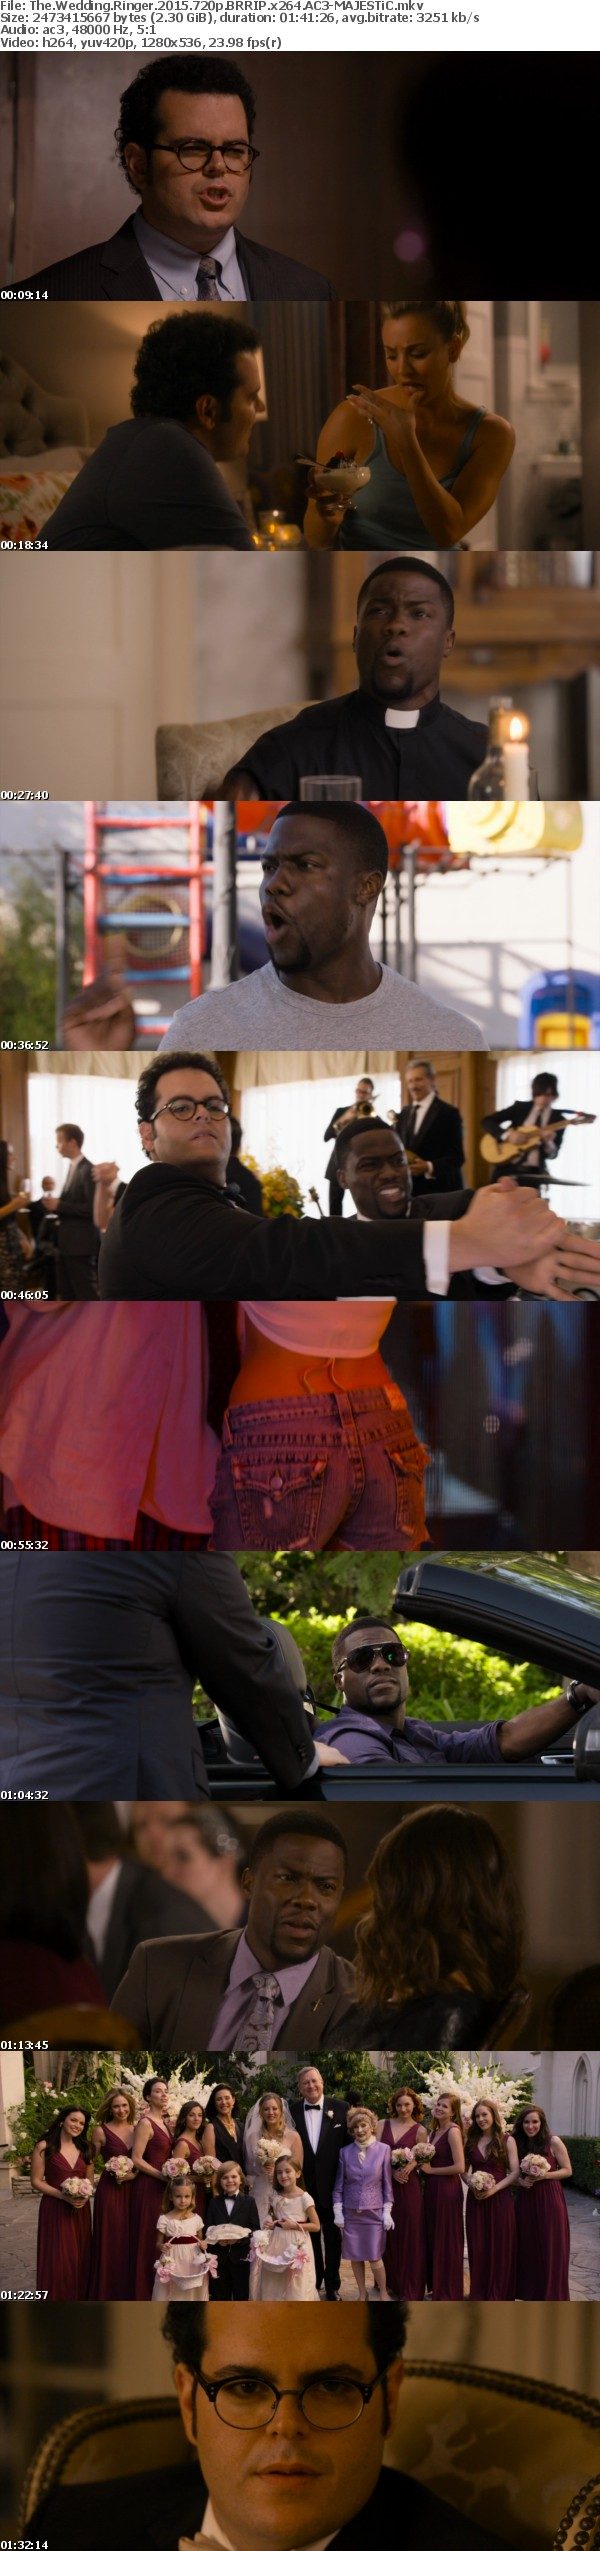 The Wedding Ringer 2015 720p BRRIP x264 AC3-MAJESTiC